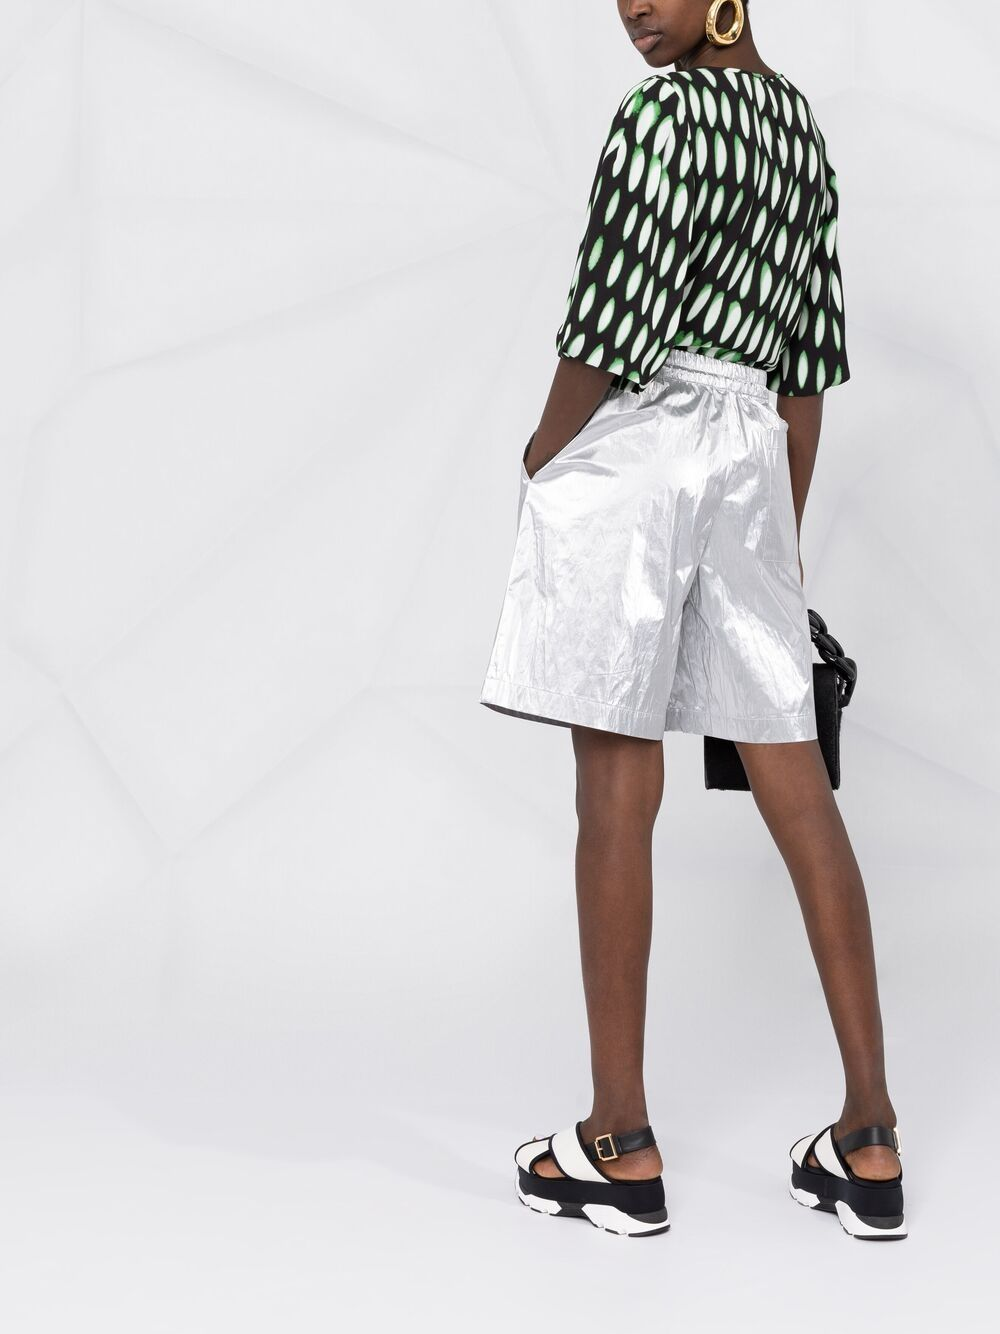 Black and green Len Lye graphic-print top  DRIES VAN NOTEN |  | CEAN-2010-10753900